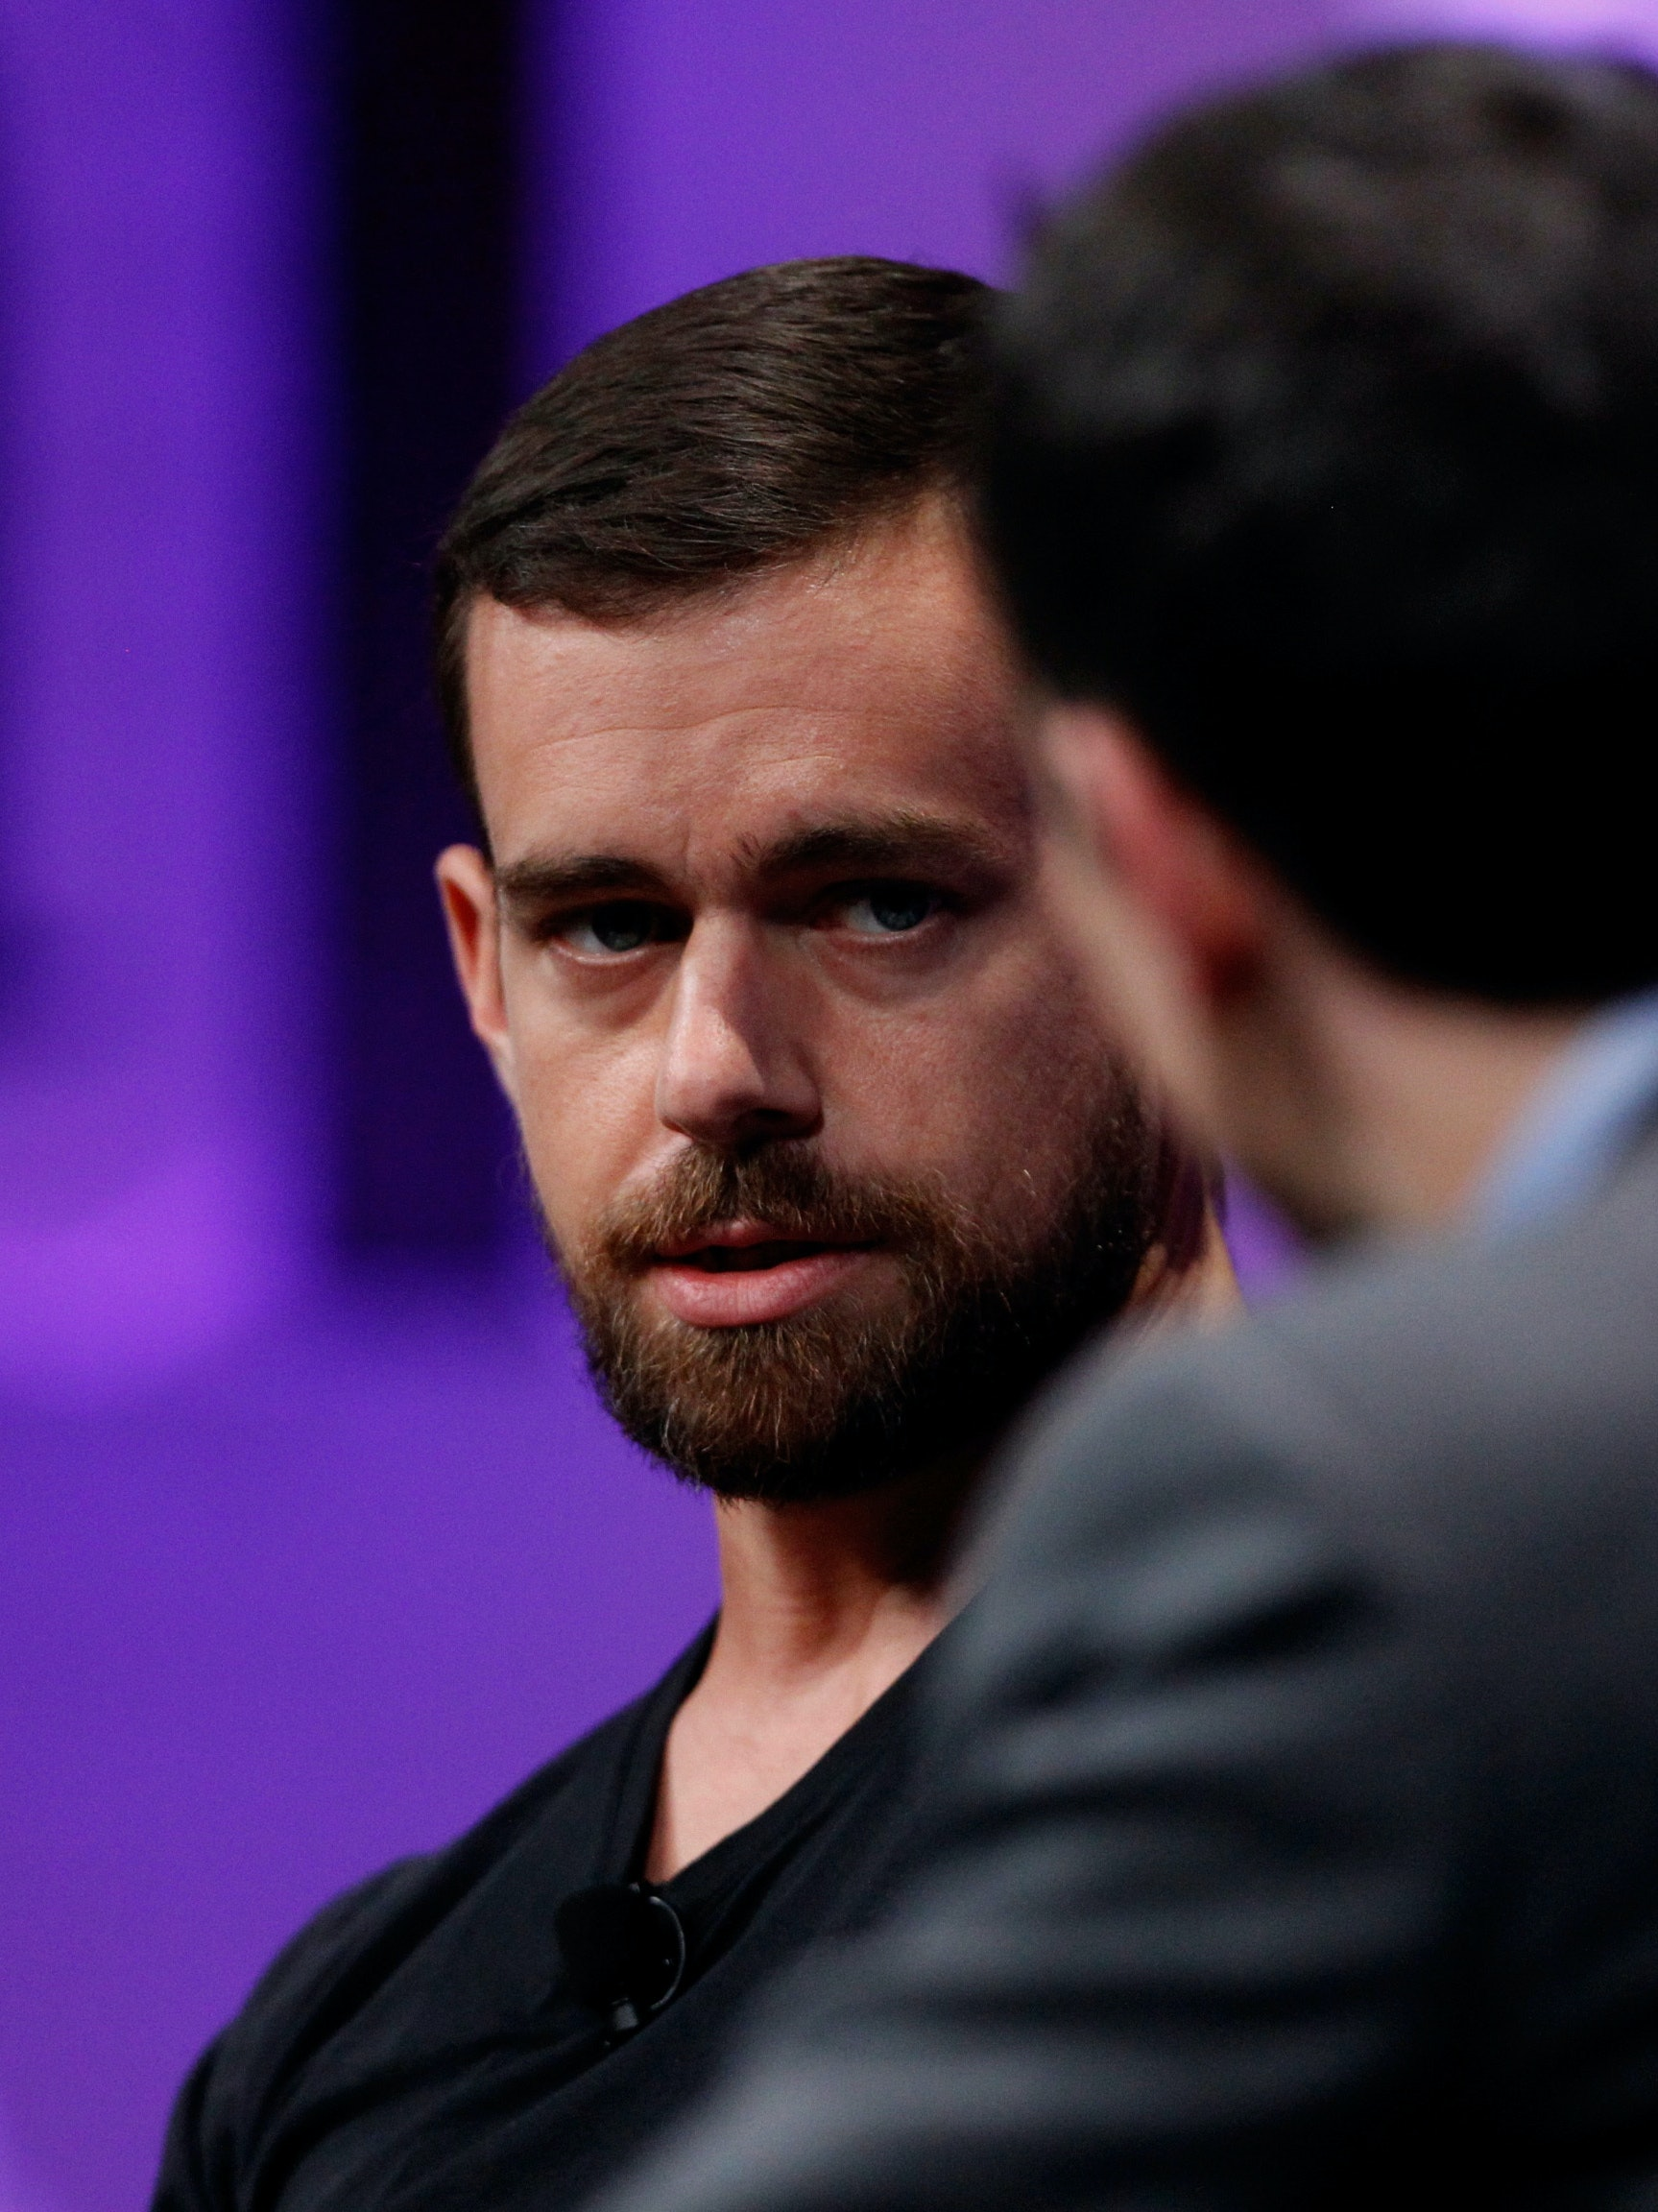 SAN FRANCISCO, CA - OCTOBER 09:  Twitter Co-Founder and Chairman and Square CEO Jack Dorsey speaks onstage during 'From 7 Dwarves to 140 Characters' at the Vanity Fair New Establishment Summit at Yerba Buena Center for the Arts on October 9, 2014 in San Francisco, California.  (Photo by Kimberly White/Getty Images for Vanity Fair)